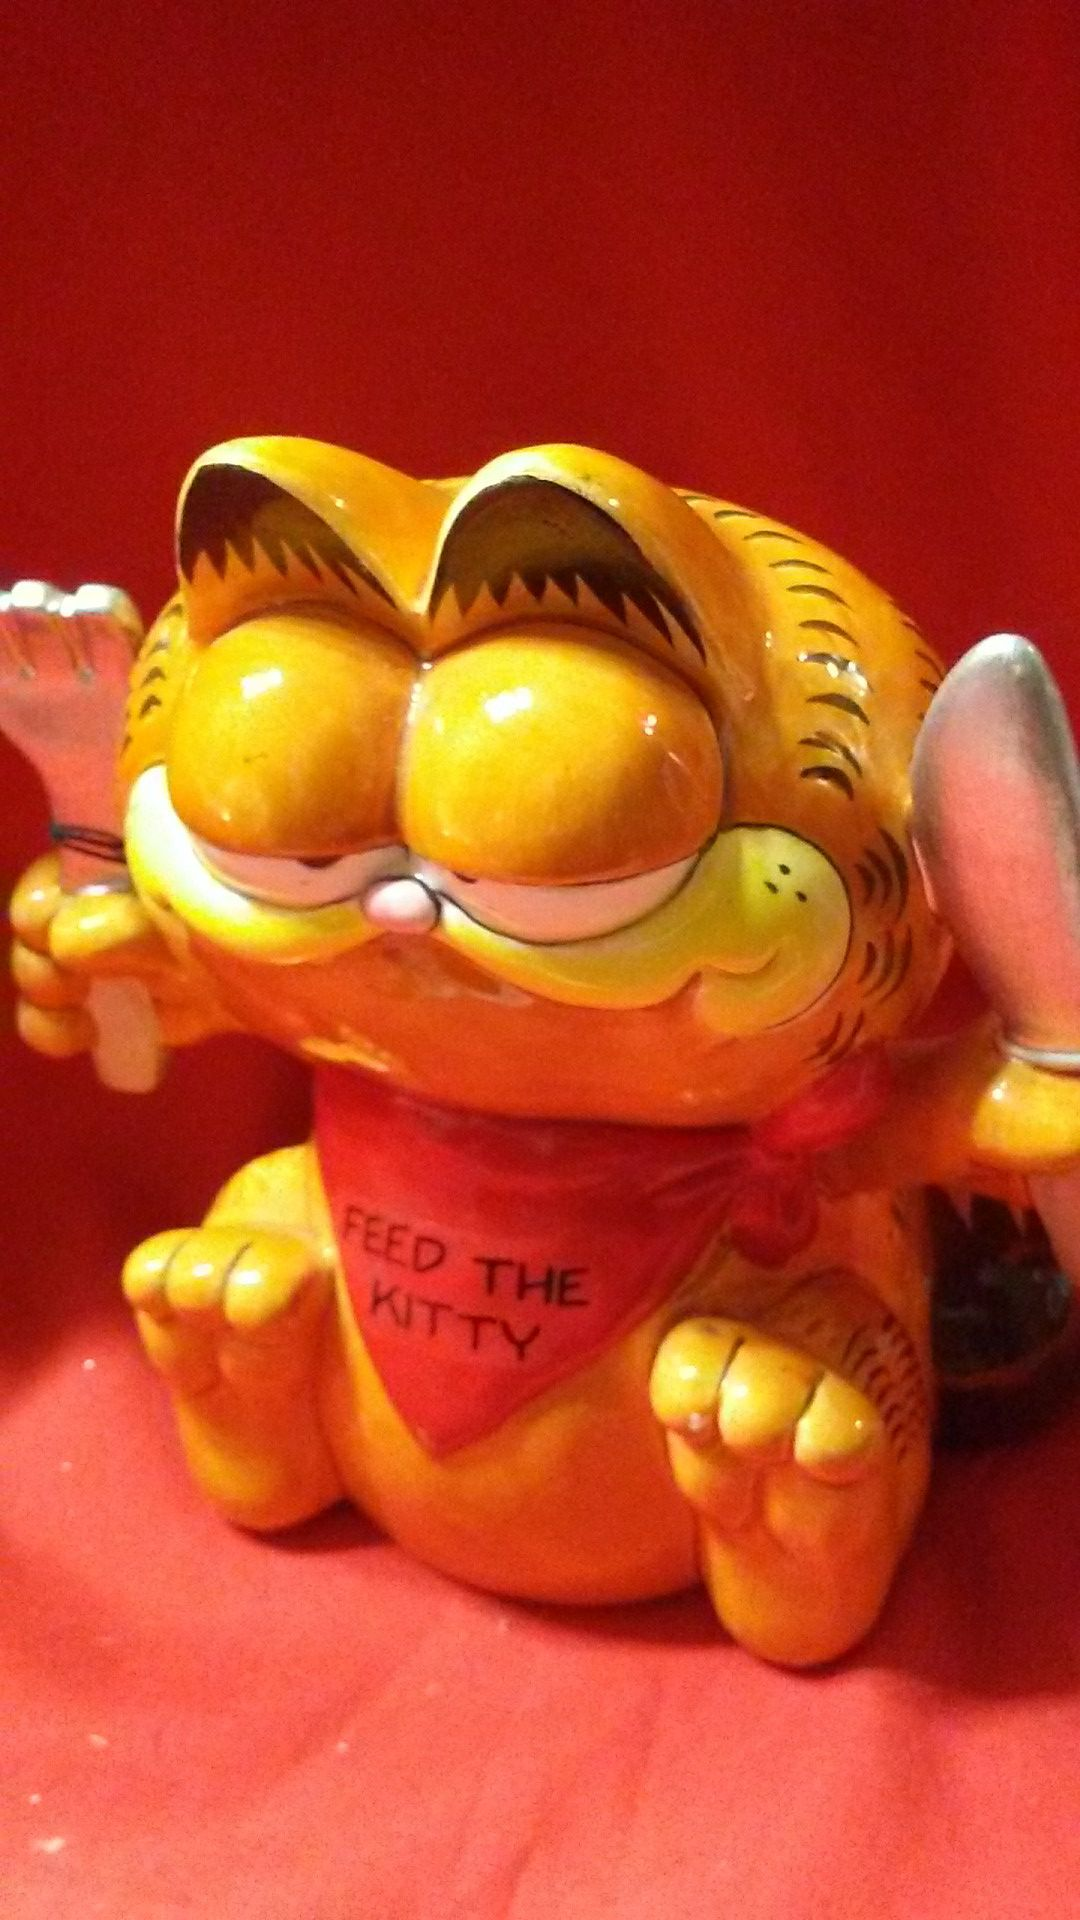 Garfield Feed The Kitty Bank, New with tag